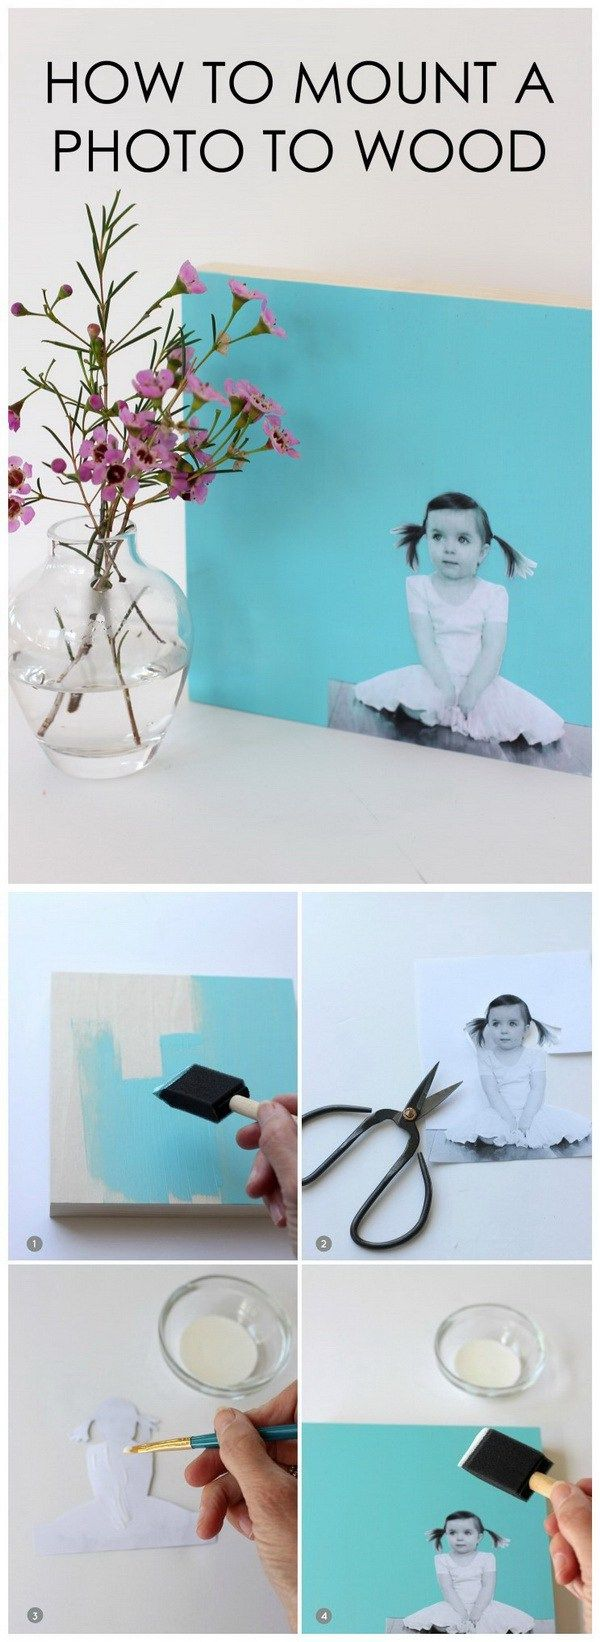 DIY Modern Photo Wall Art. Transform your favorite photo into an art piece for a unique gift idea with Mod Podge, paint, and a wood block.